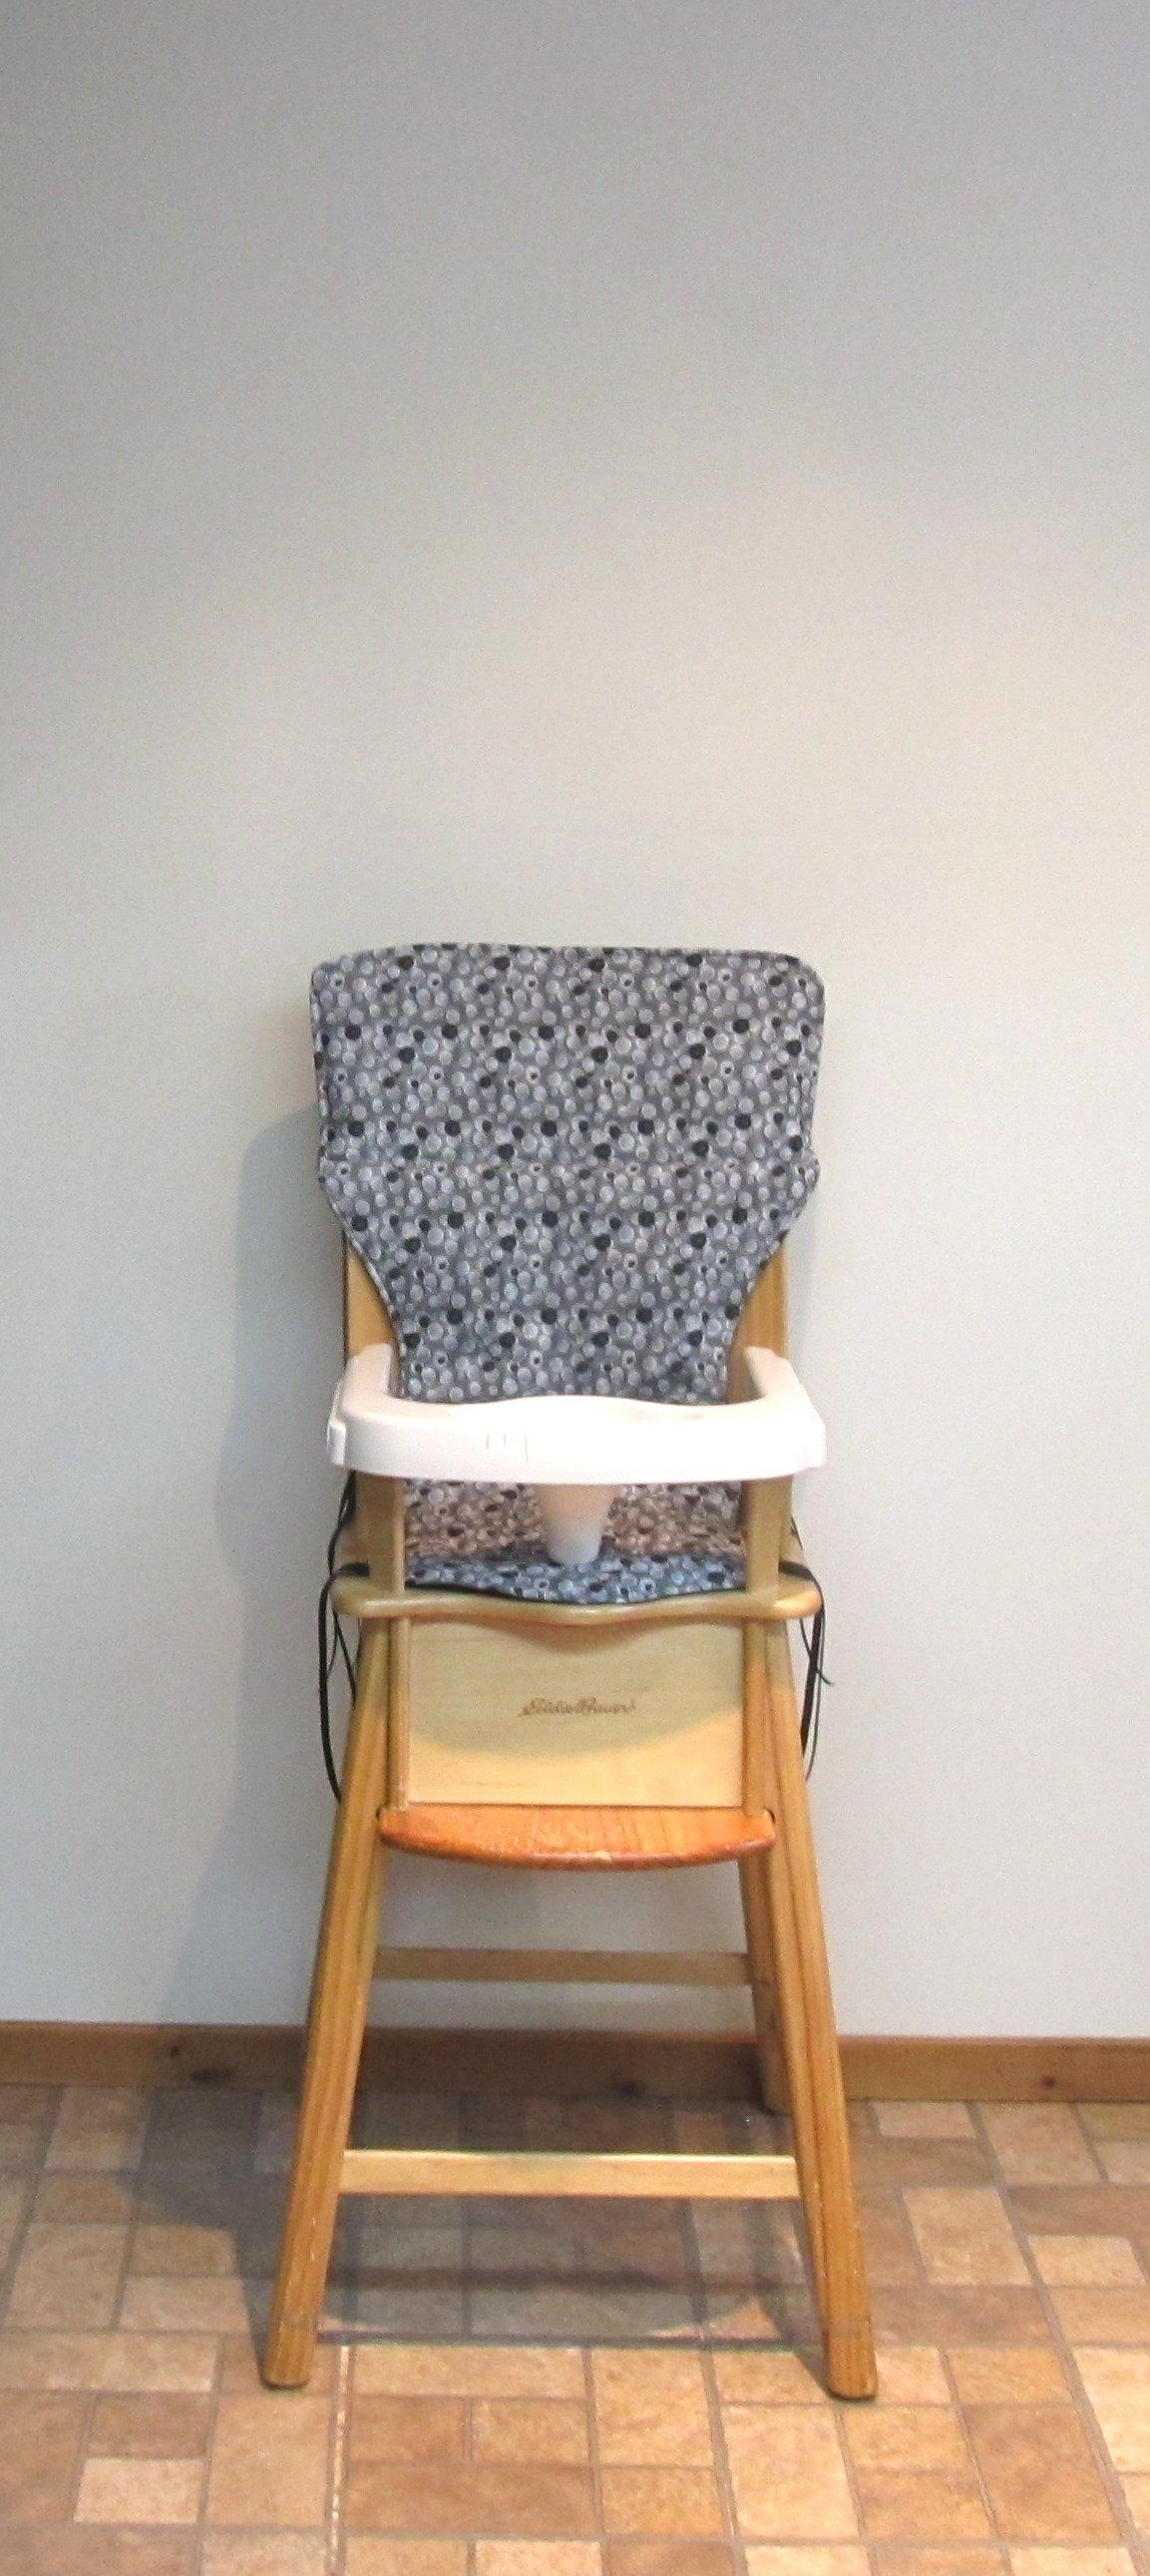 High Chair Pad Bubbles On Gray Eddie Bauer Baby Accessory Chair